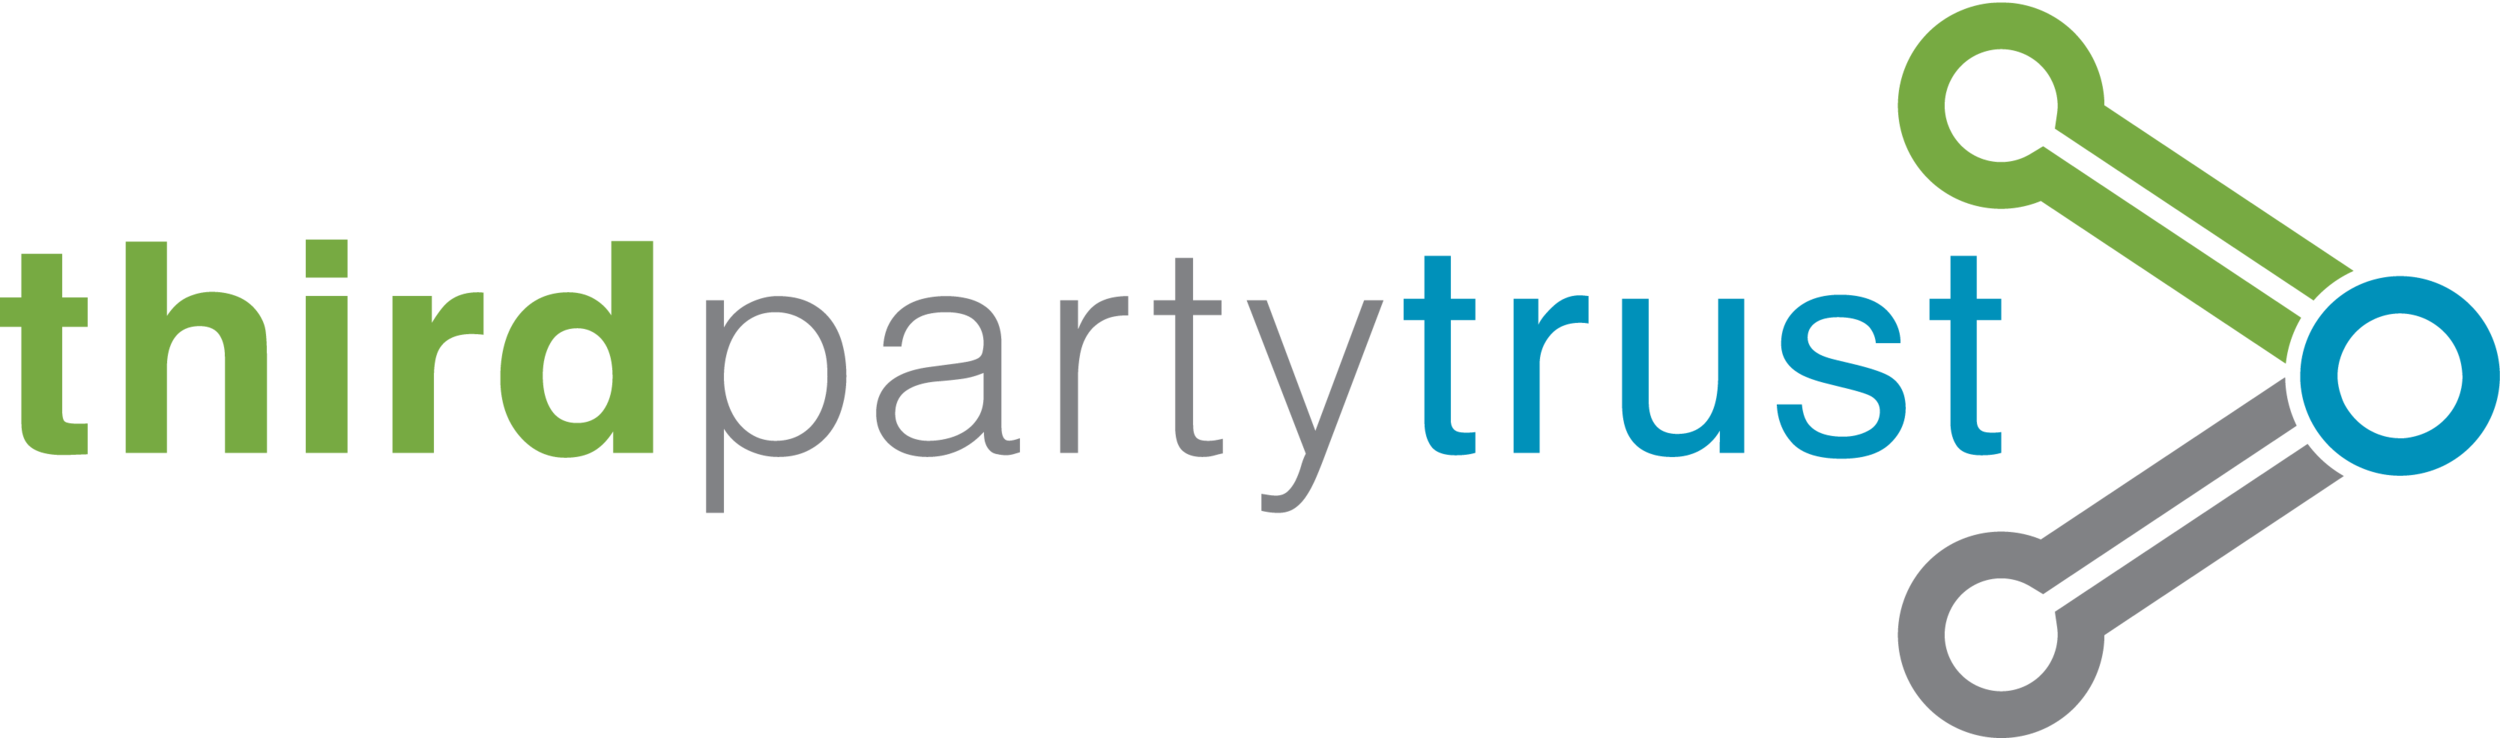 ThirdPartyTrust.png